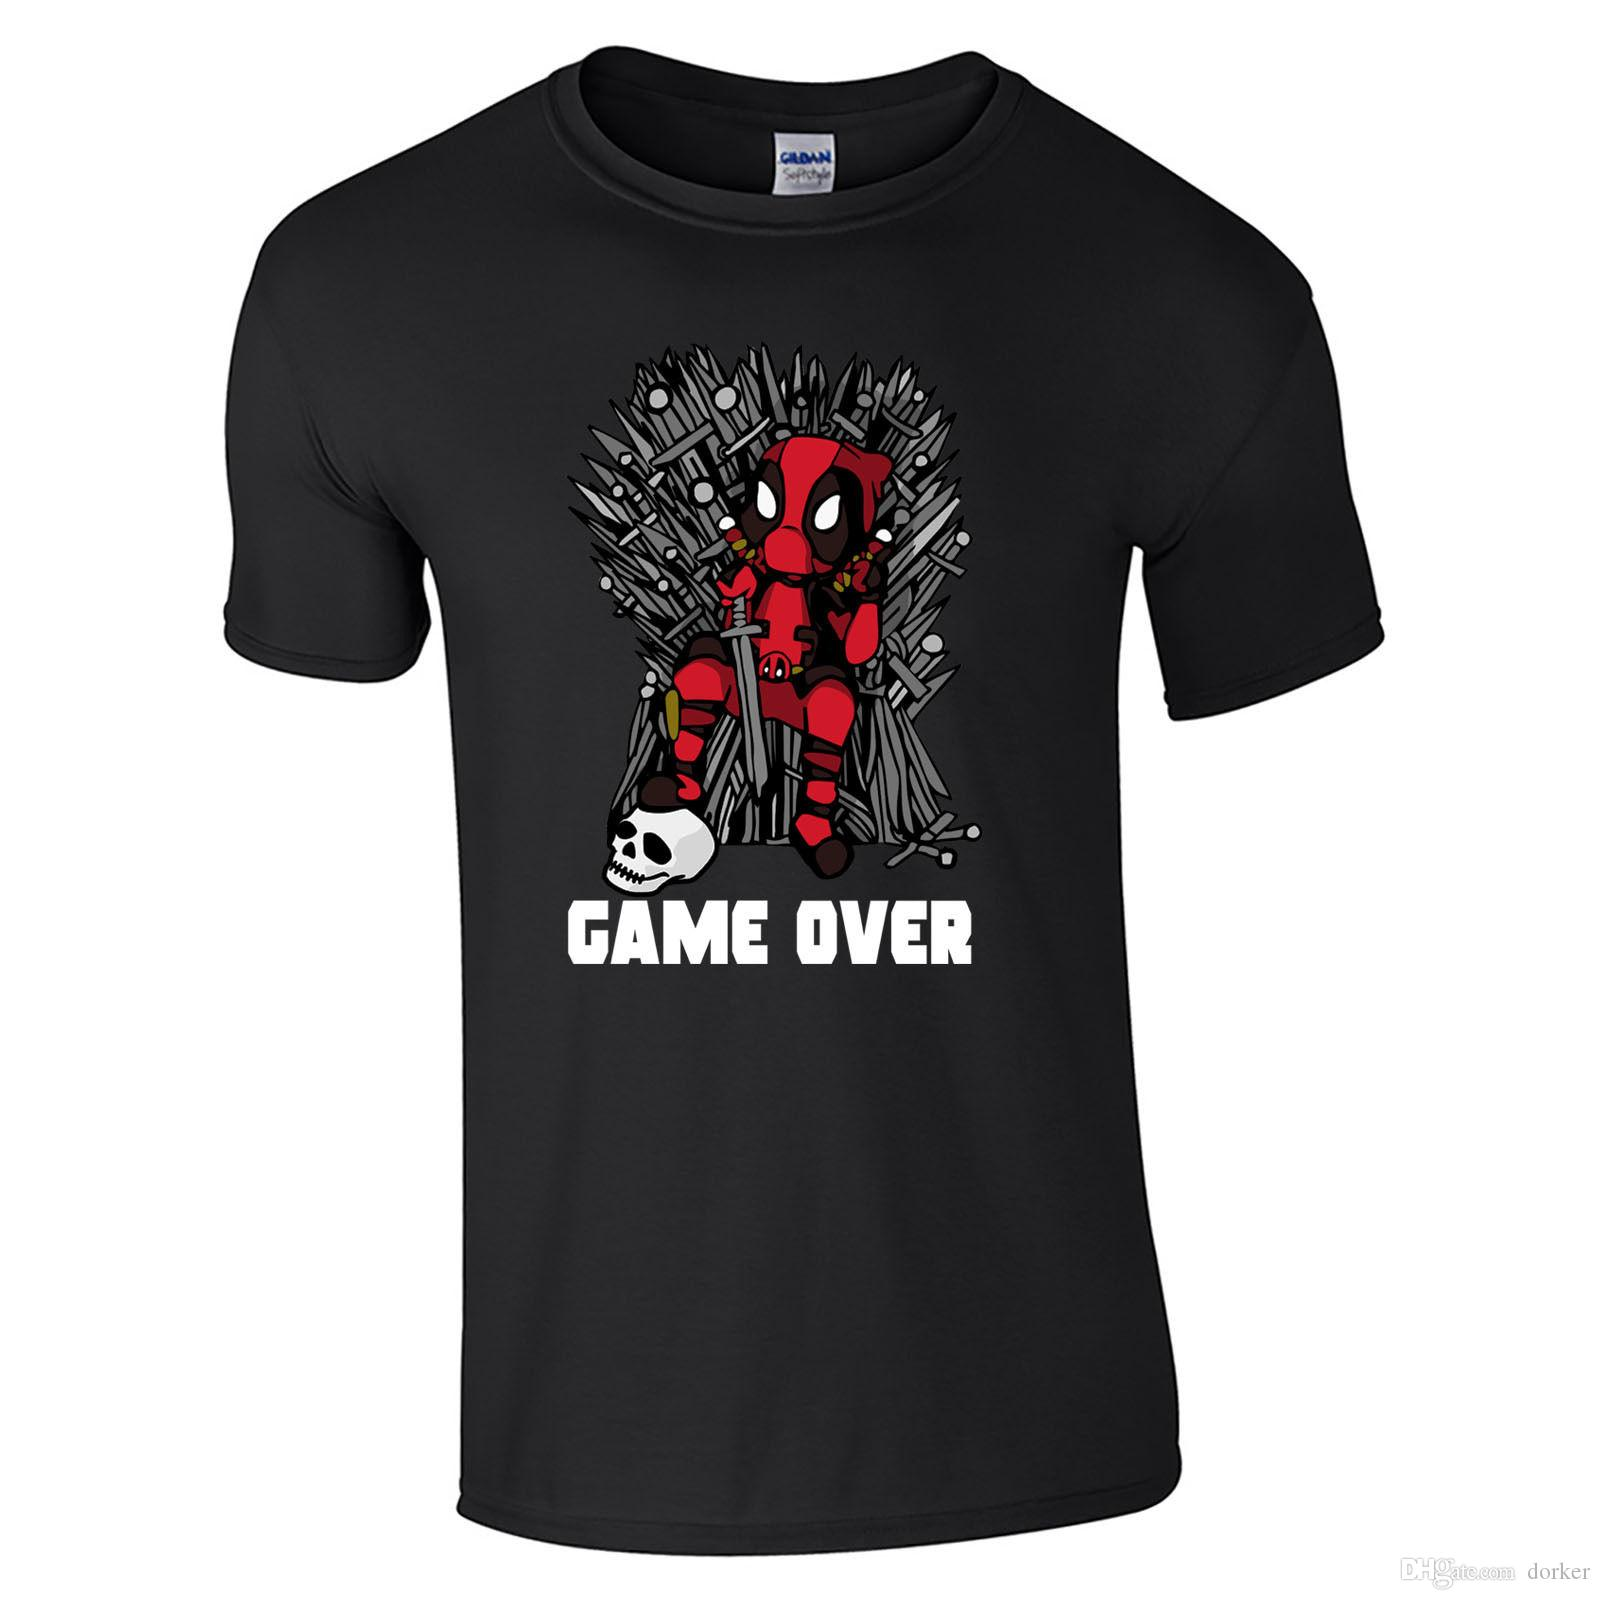 ee09399fc Equestrian Shirts Horse Riding T Shirt Ride Tee Fashion Men T Shirts Round  Neck 100% Cotton Geek Family Top TeeDeadpool Game Over T Shir Latest T Shirt  ...